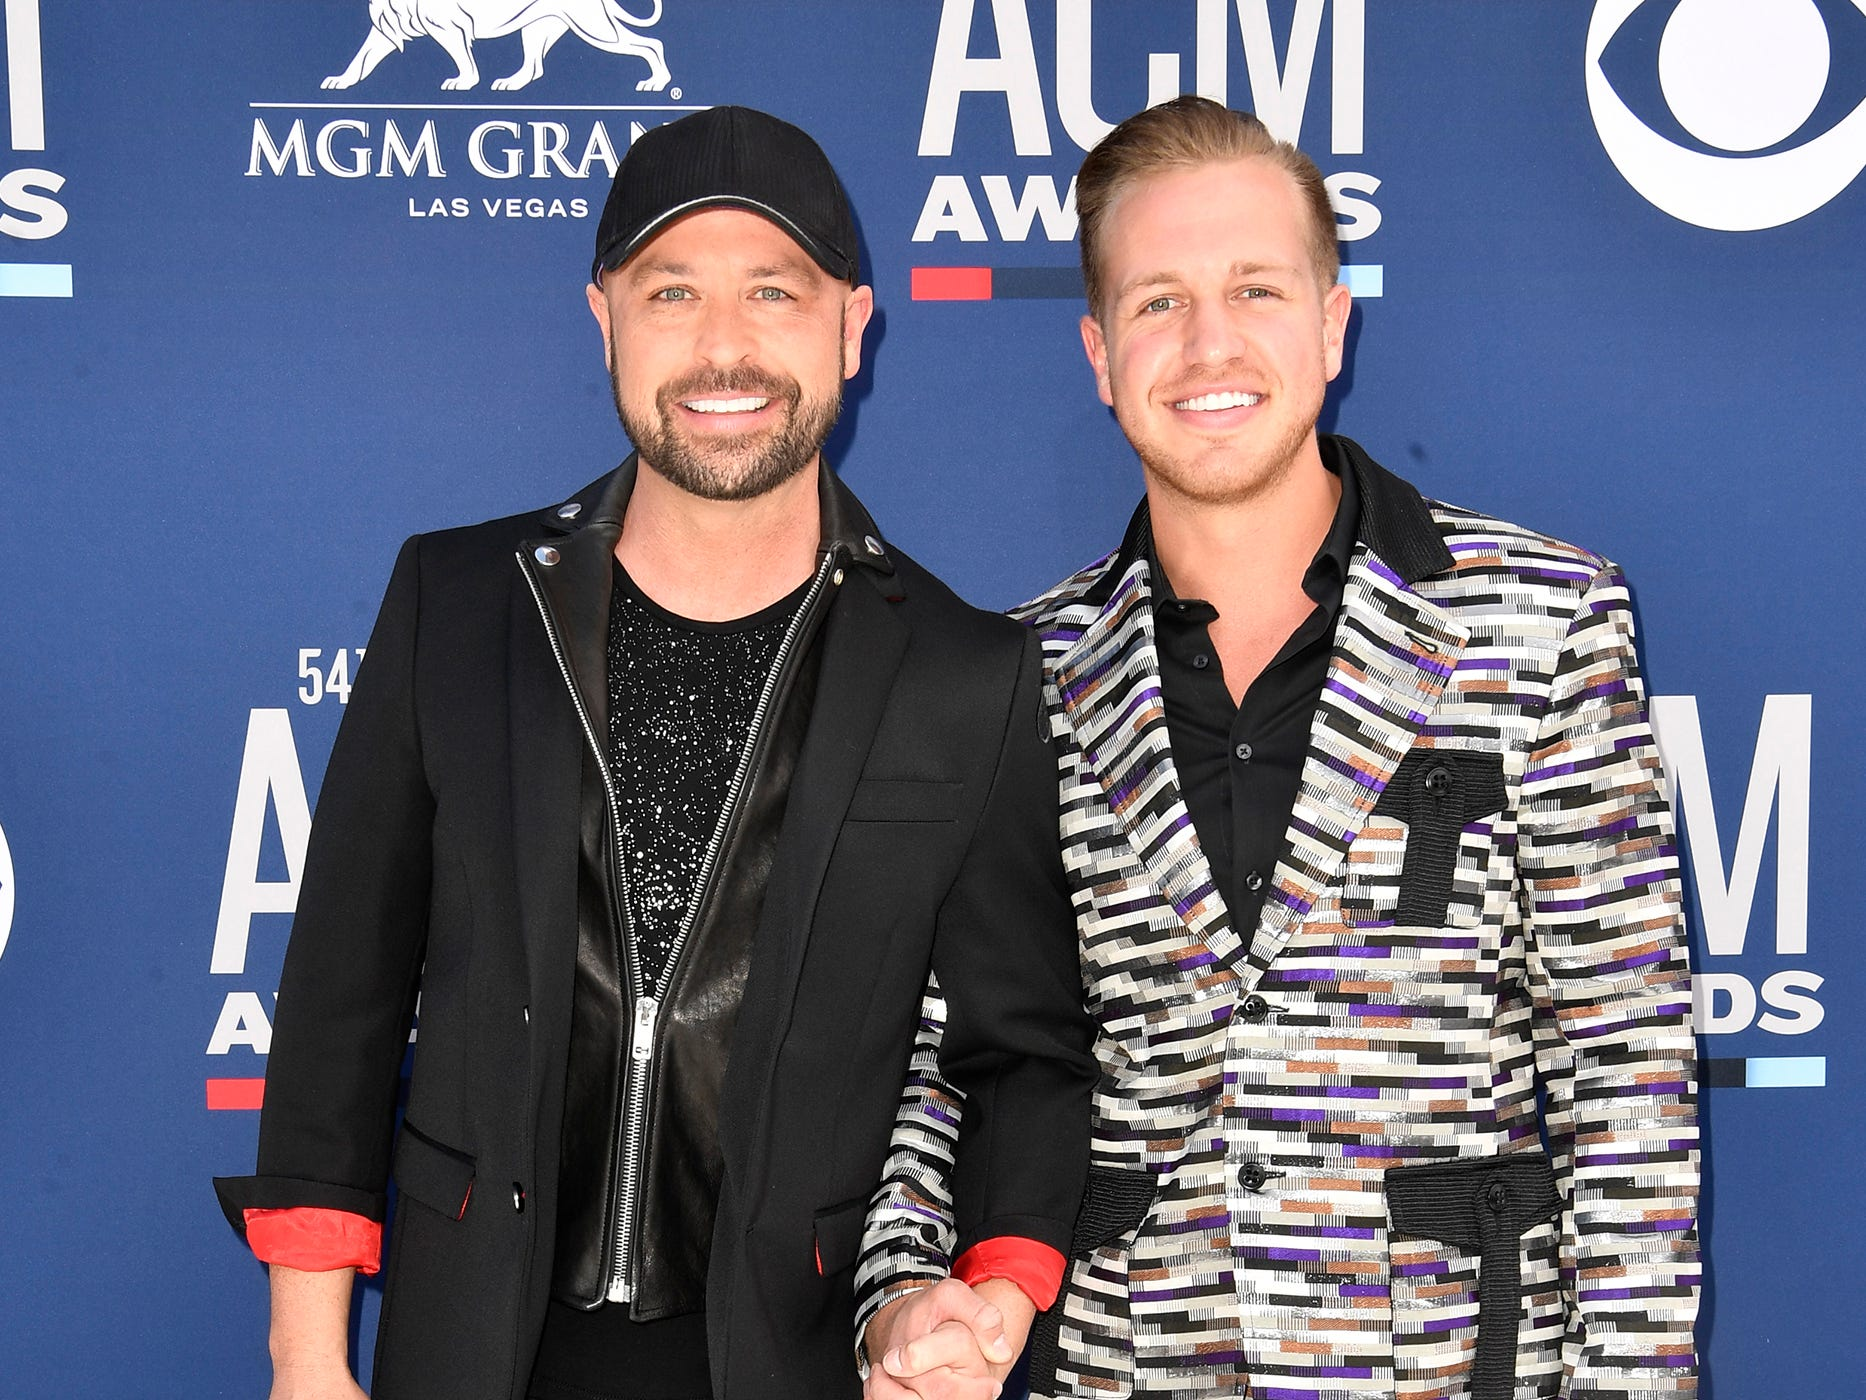 Cody Alan, left, and Michael Trea Smith, walk the red carpet at the 54TH Academy of Country Music Awards Sunday, April 7, 2019, in Las Vegas, Nev.